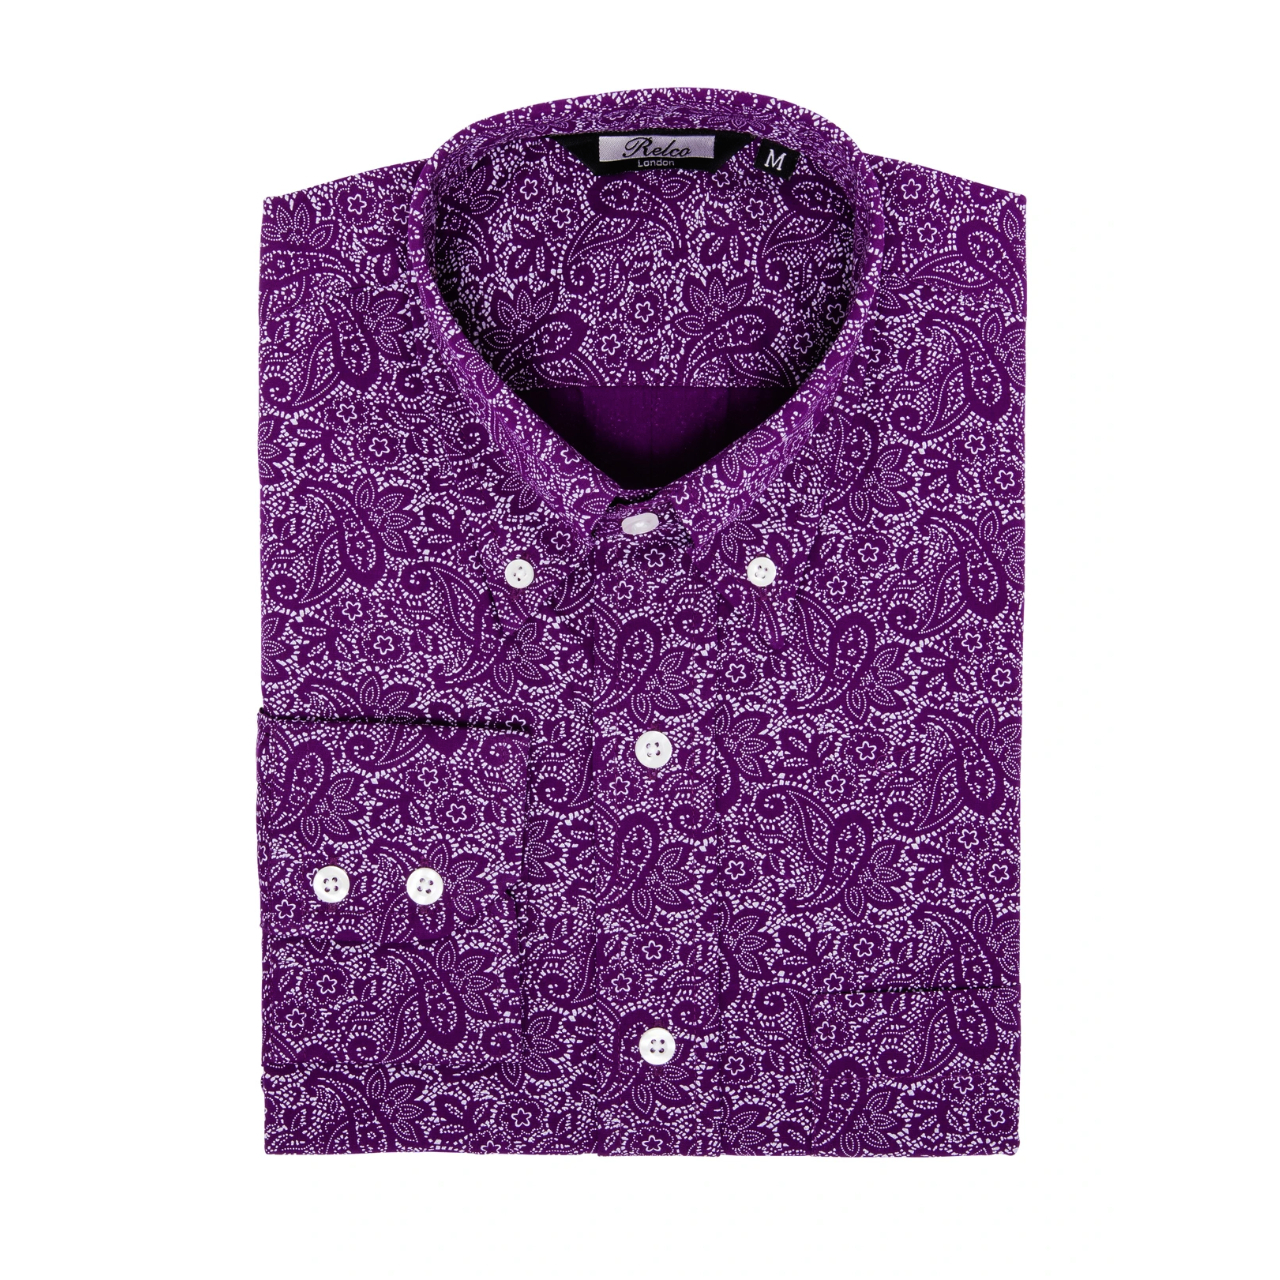 Relco London | Button Down Paisley Shirt - Purple